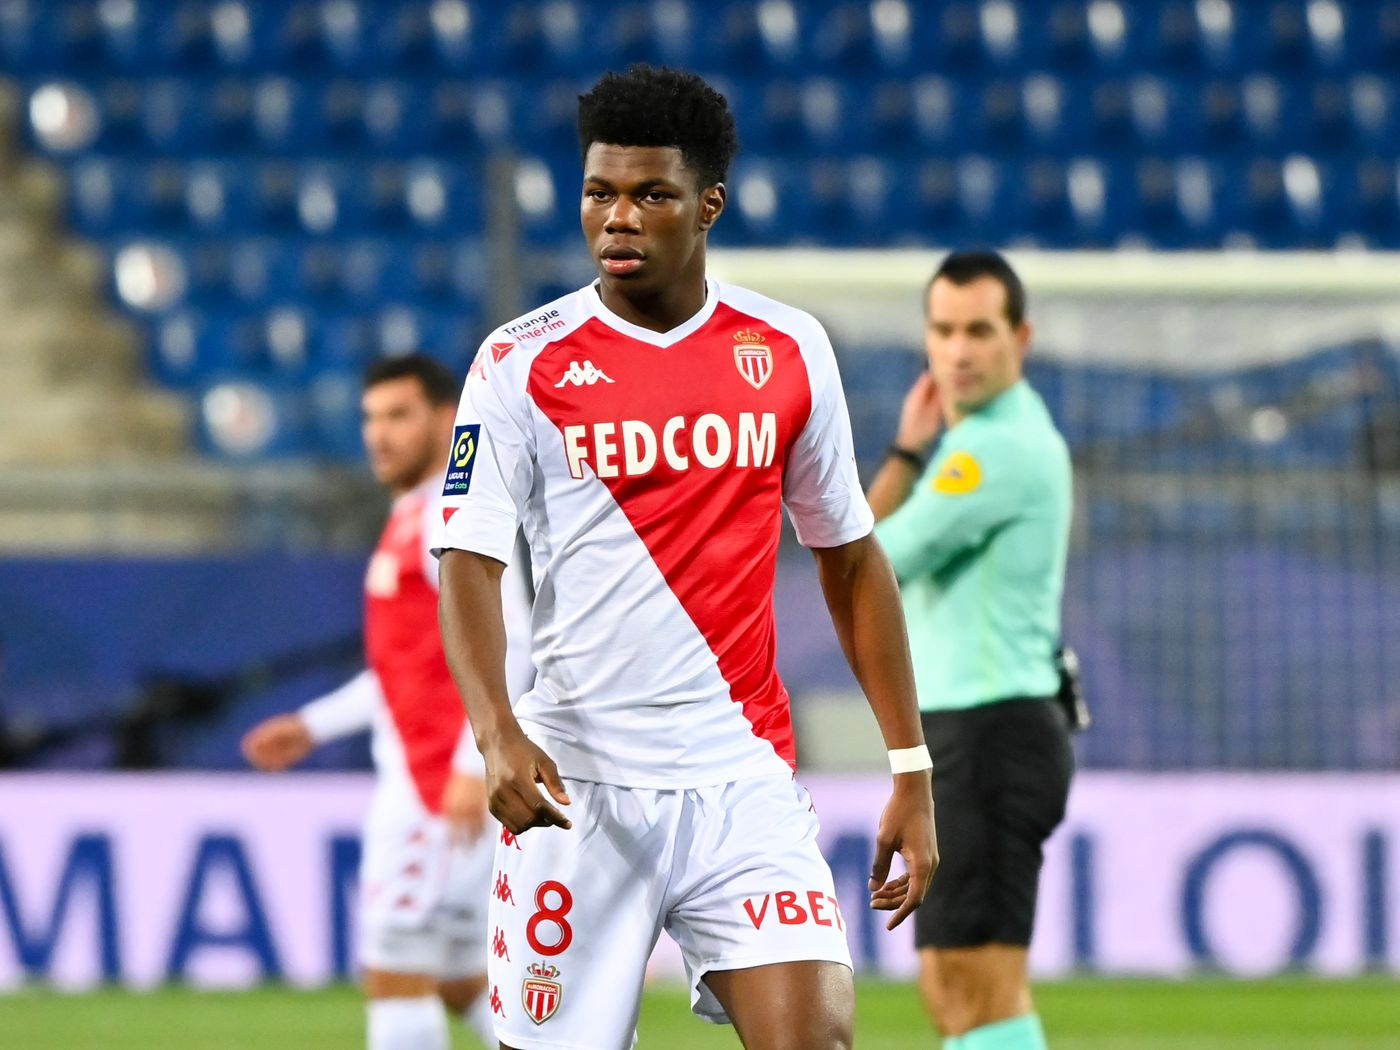 The problem is the competition around the player. Player Analysis: Aurélien Tchouaméni - Breaking The Lines